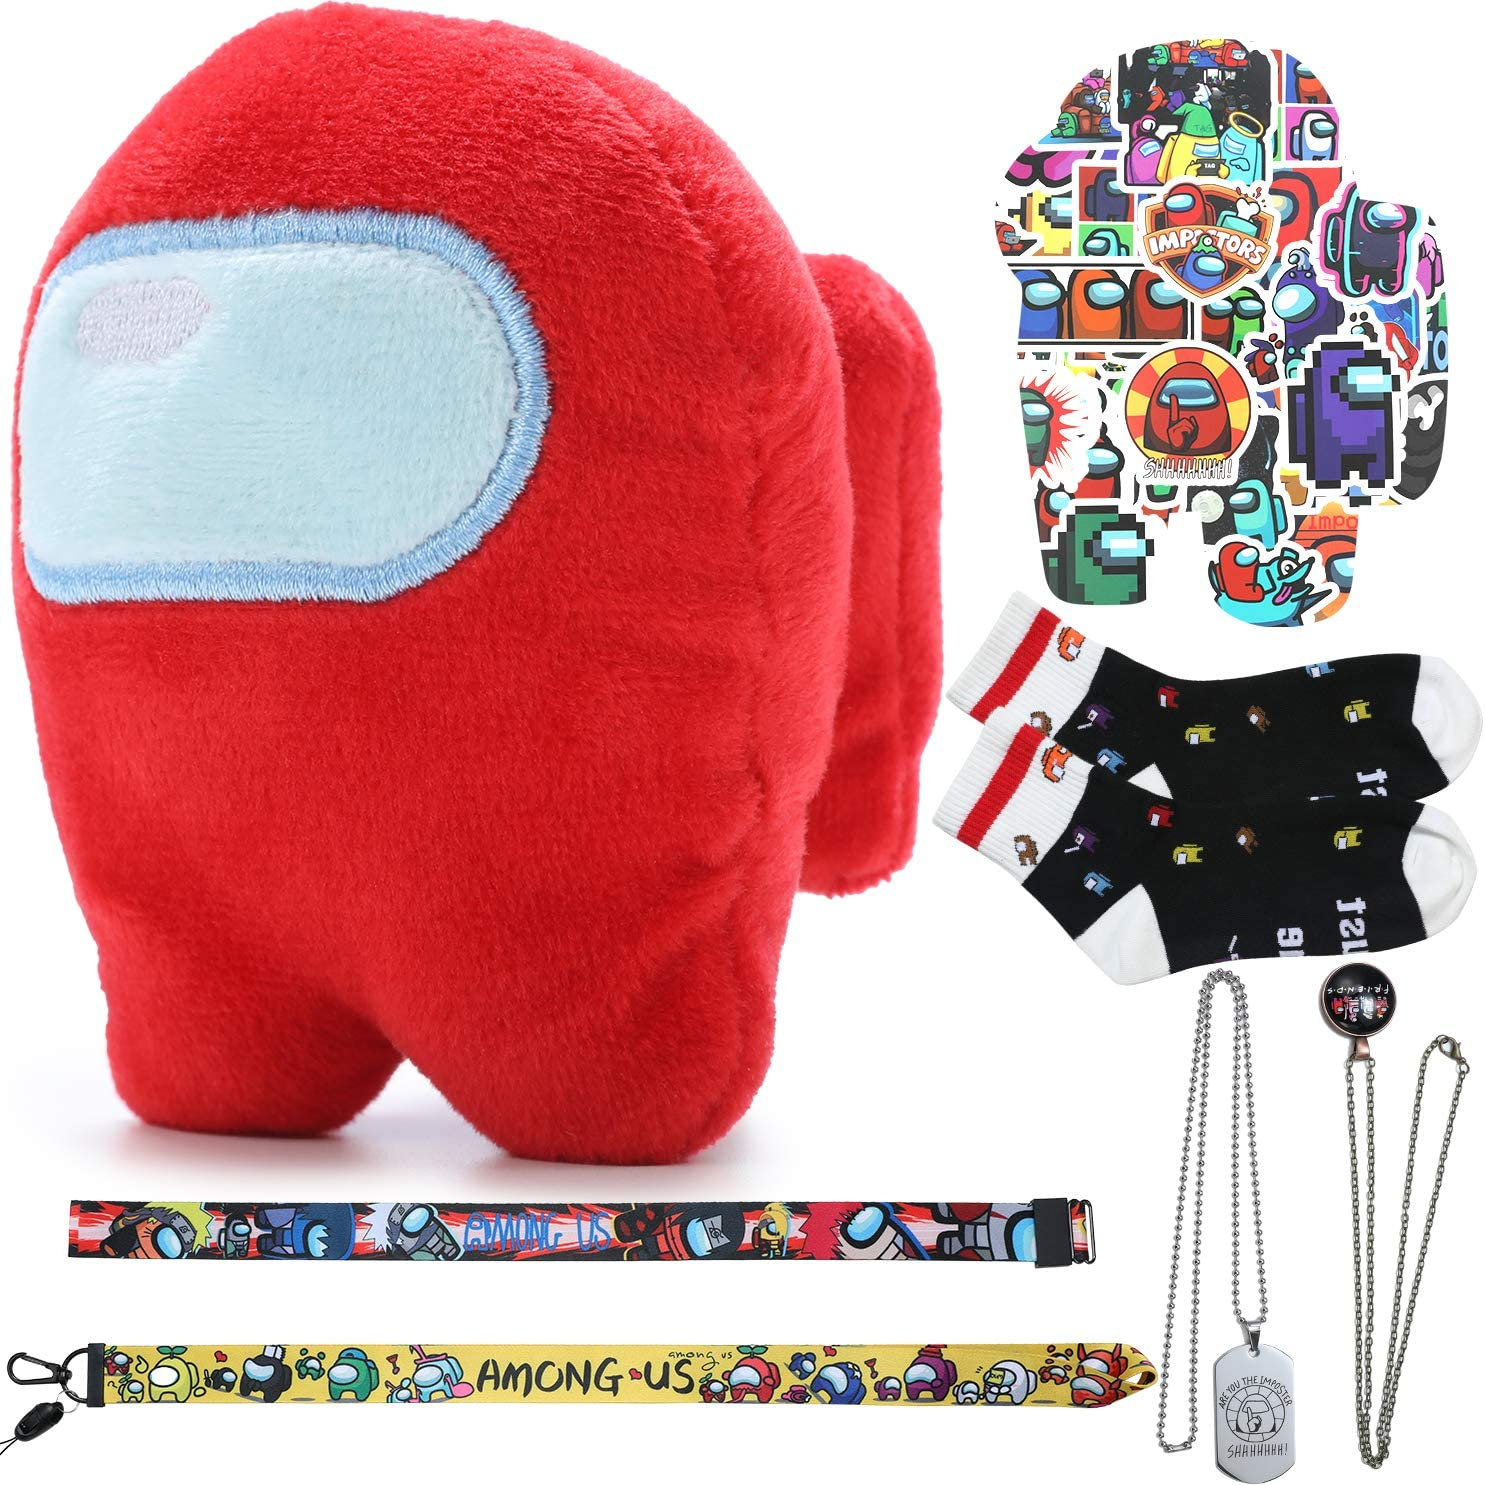 Imposter,1 Amongs us Plushie//1 Adult and Kid Socks//50 Stickers//1 Necklace//1 Pendant//1 Lanyard//1 Hand Ring,As Party Supplies Novelty Crazy Funny Among Socks US Among Plush Us